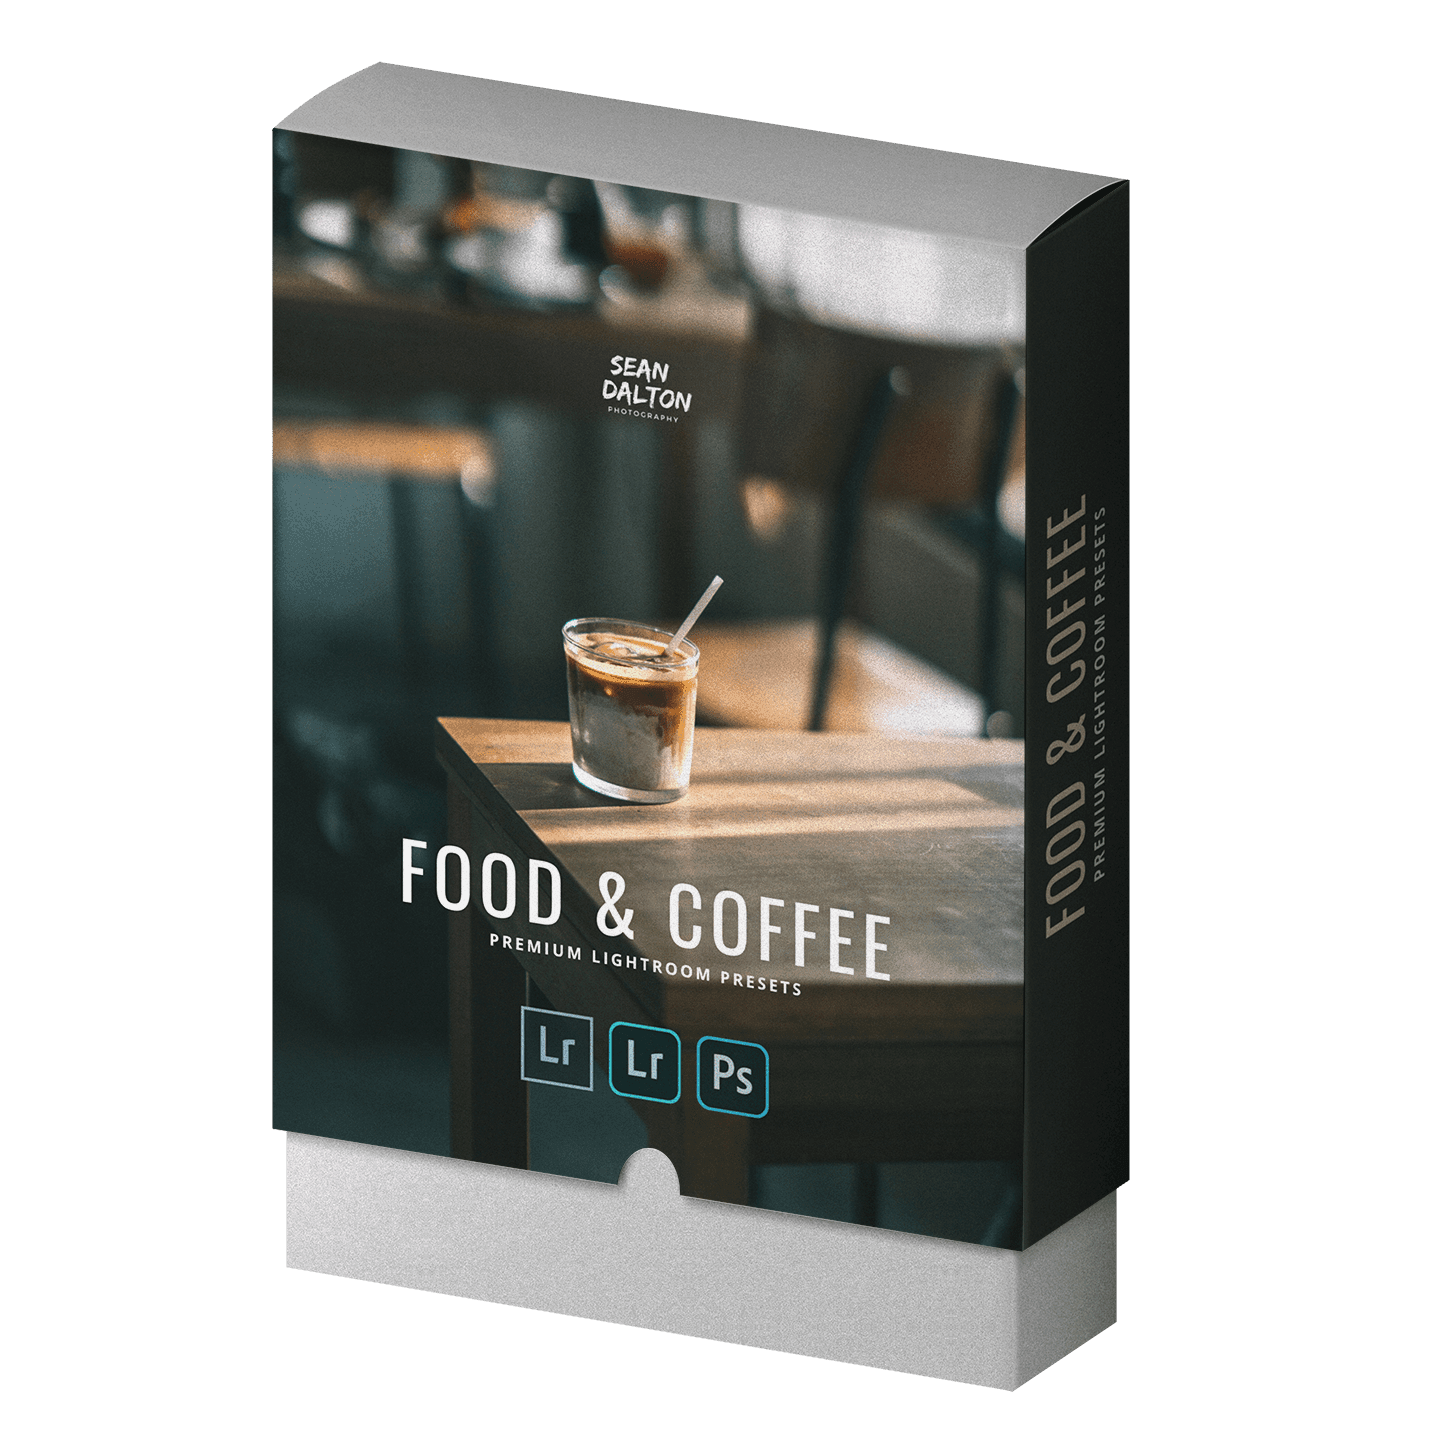 Sean Dalton - Food & Cafe Preset Pack